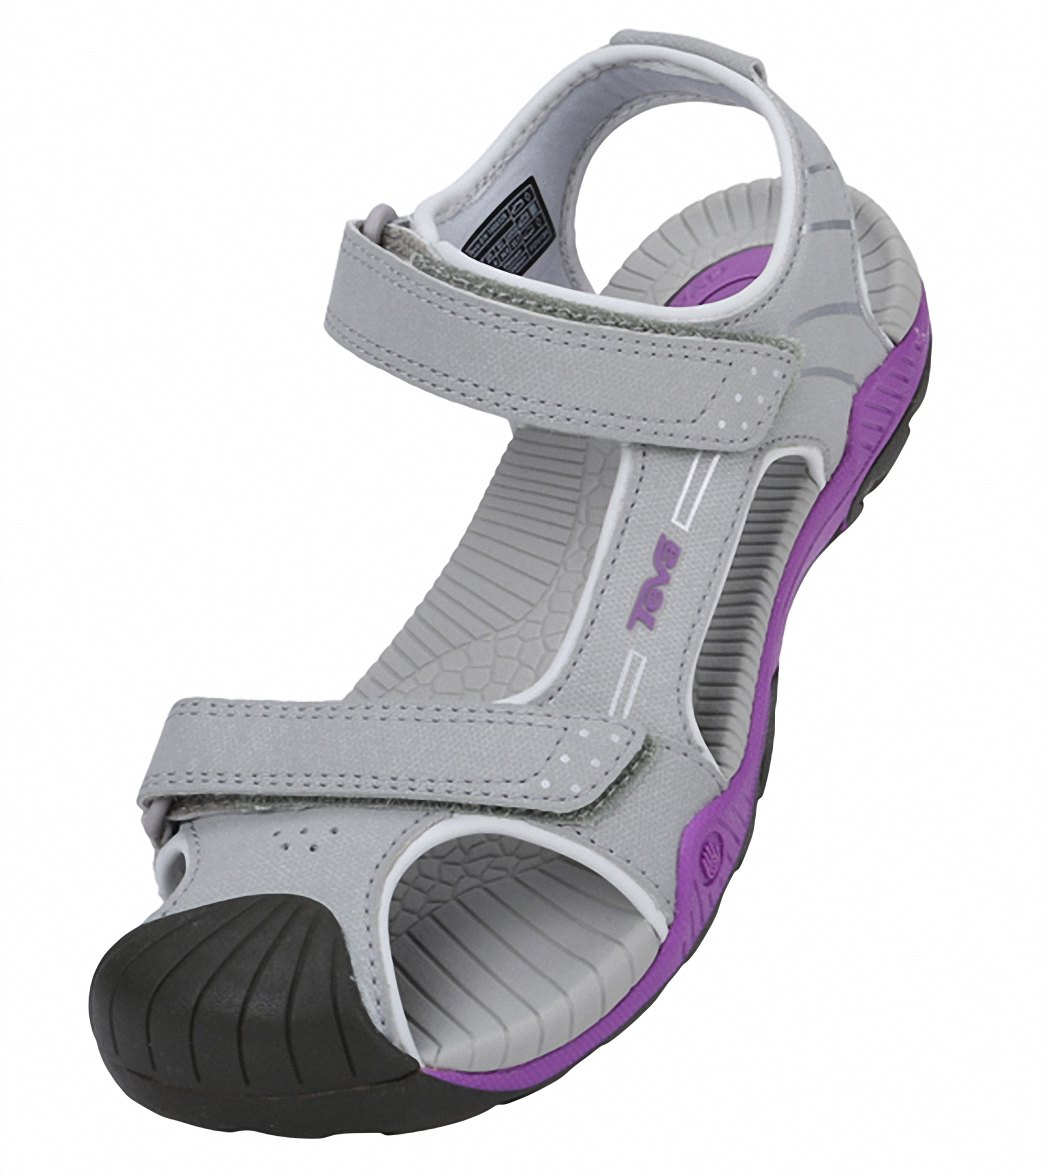 cec67b3aeb3 Teva Youth Girls' (1-7) Toachi 2 Water Shoes at SwimOutlet.com